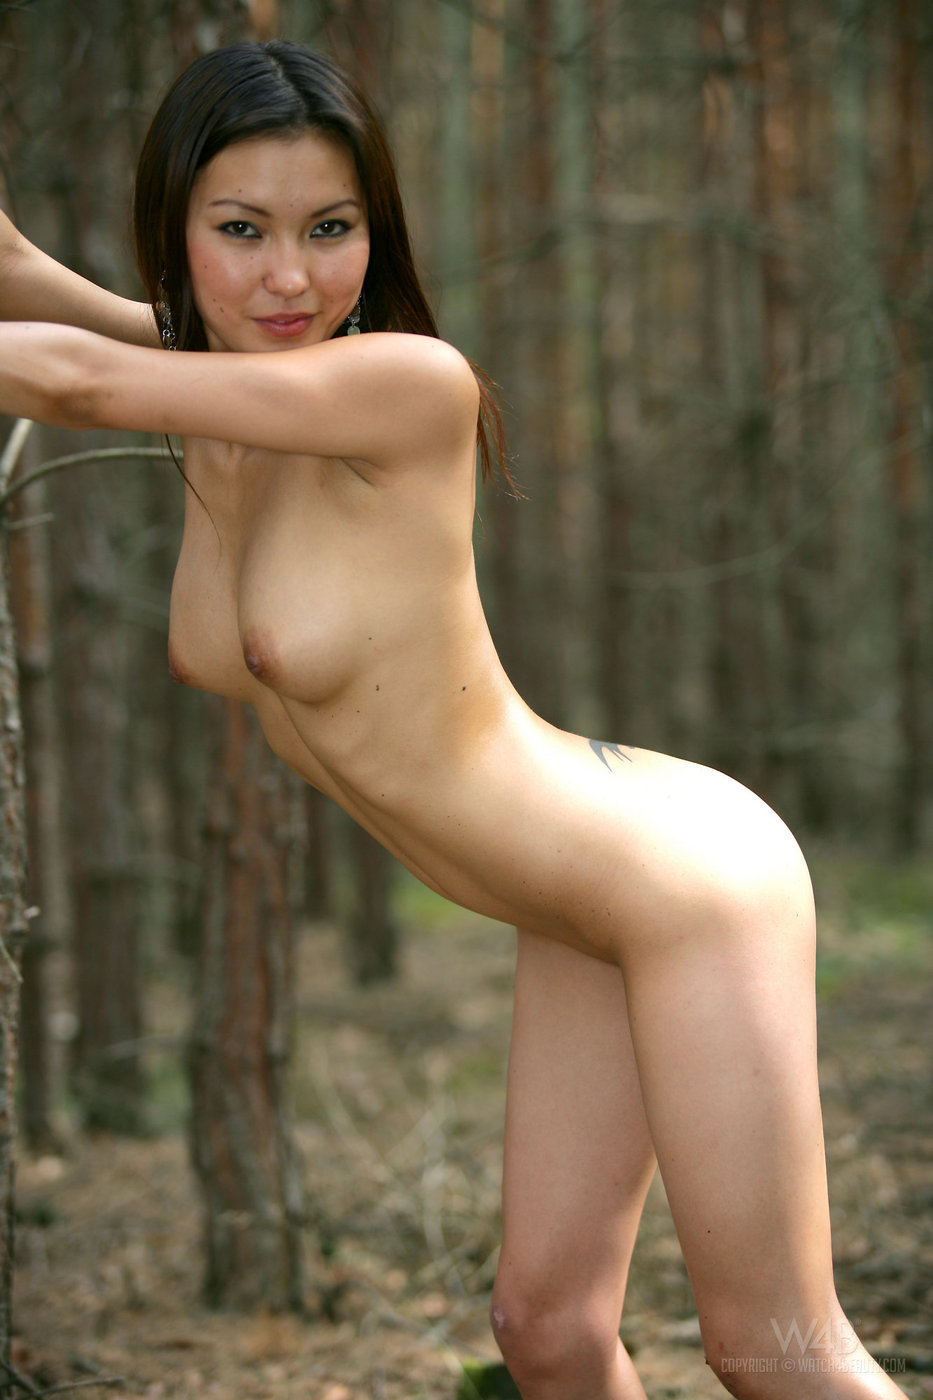 Yellow bikini exotic beauty shows off her naked body in the forest